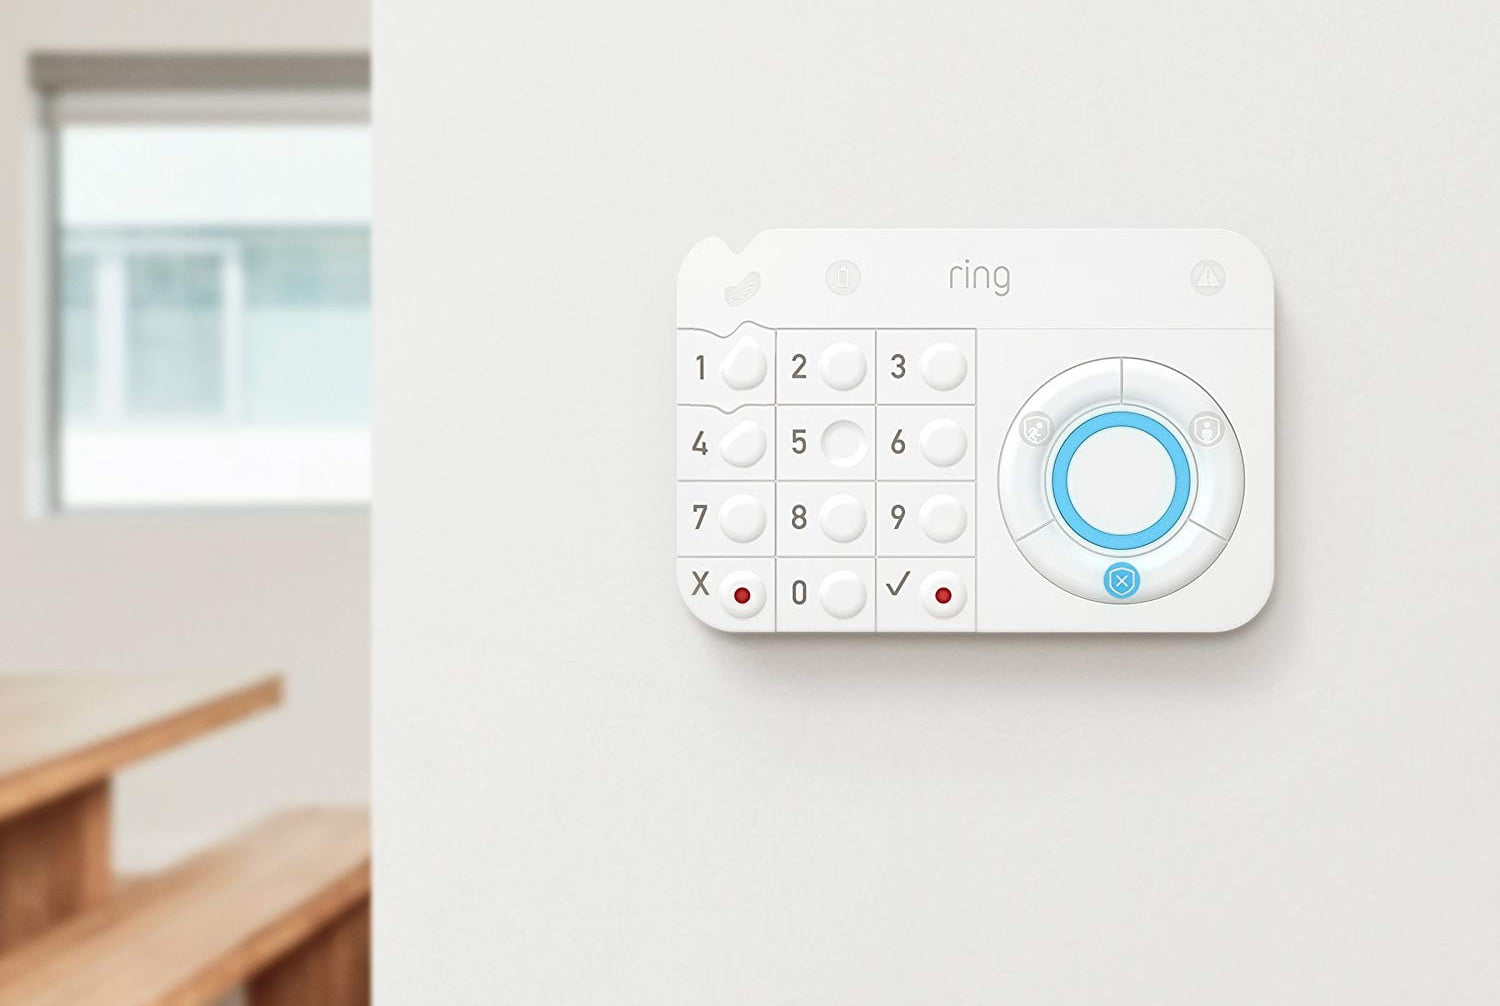 amazon slashes prices on ring alarm systems and throws in a free echo dot 5 piece kit 2  1